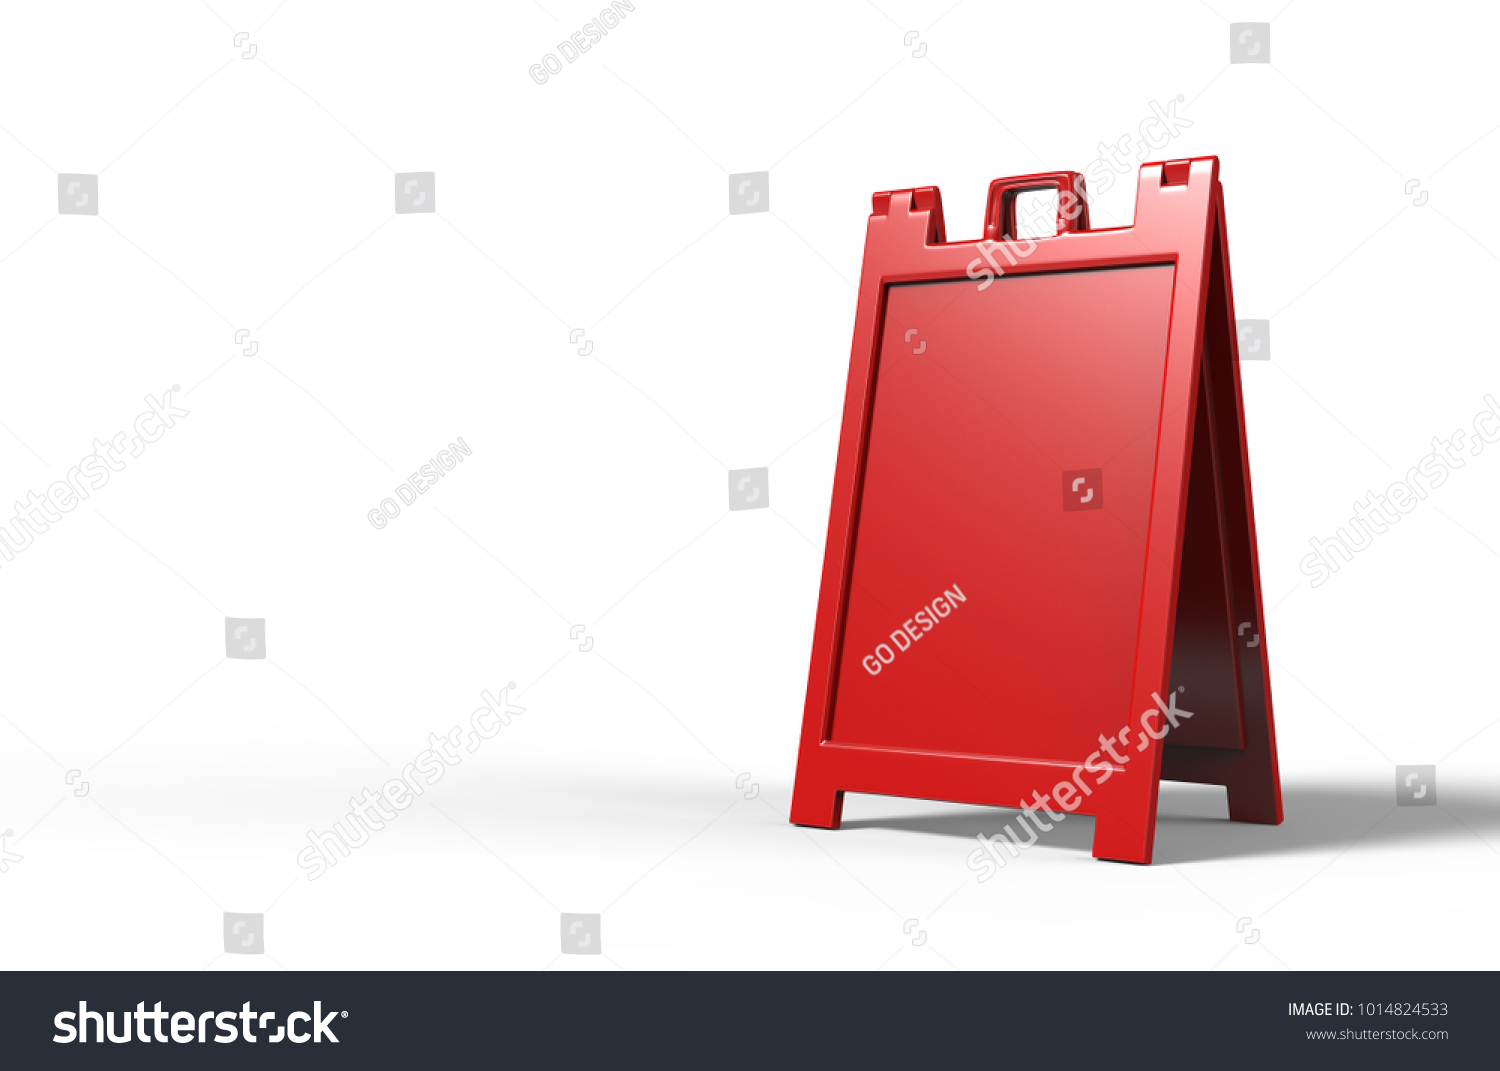 Lightweight Portable Plastic A Frames Advertising Banner Stock ...